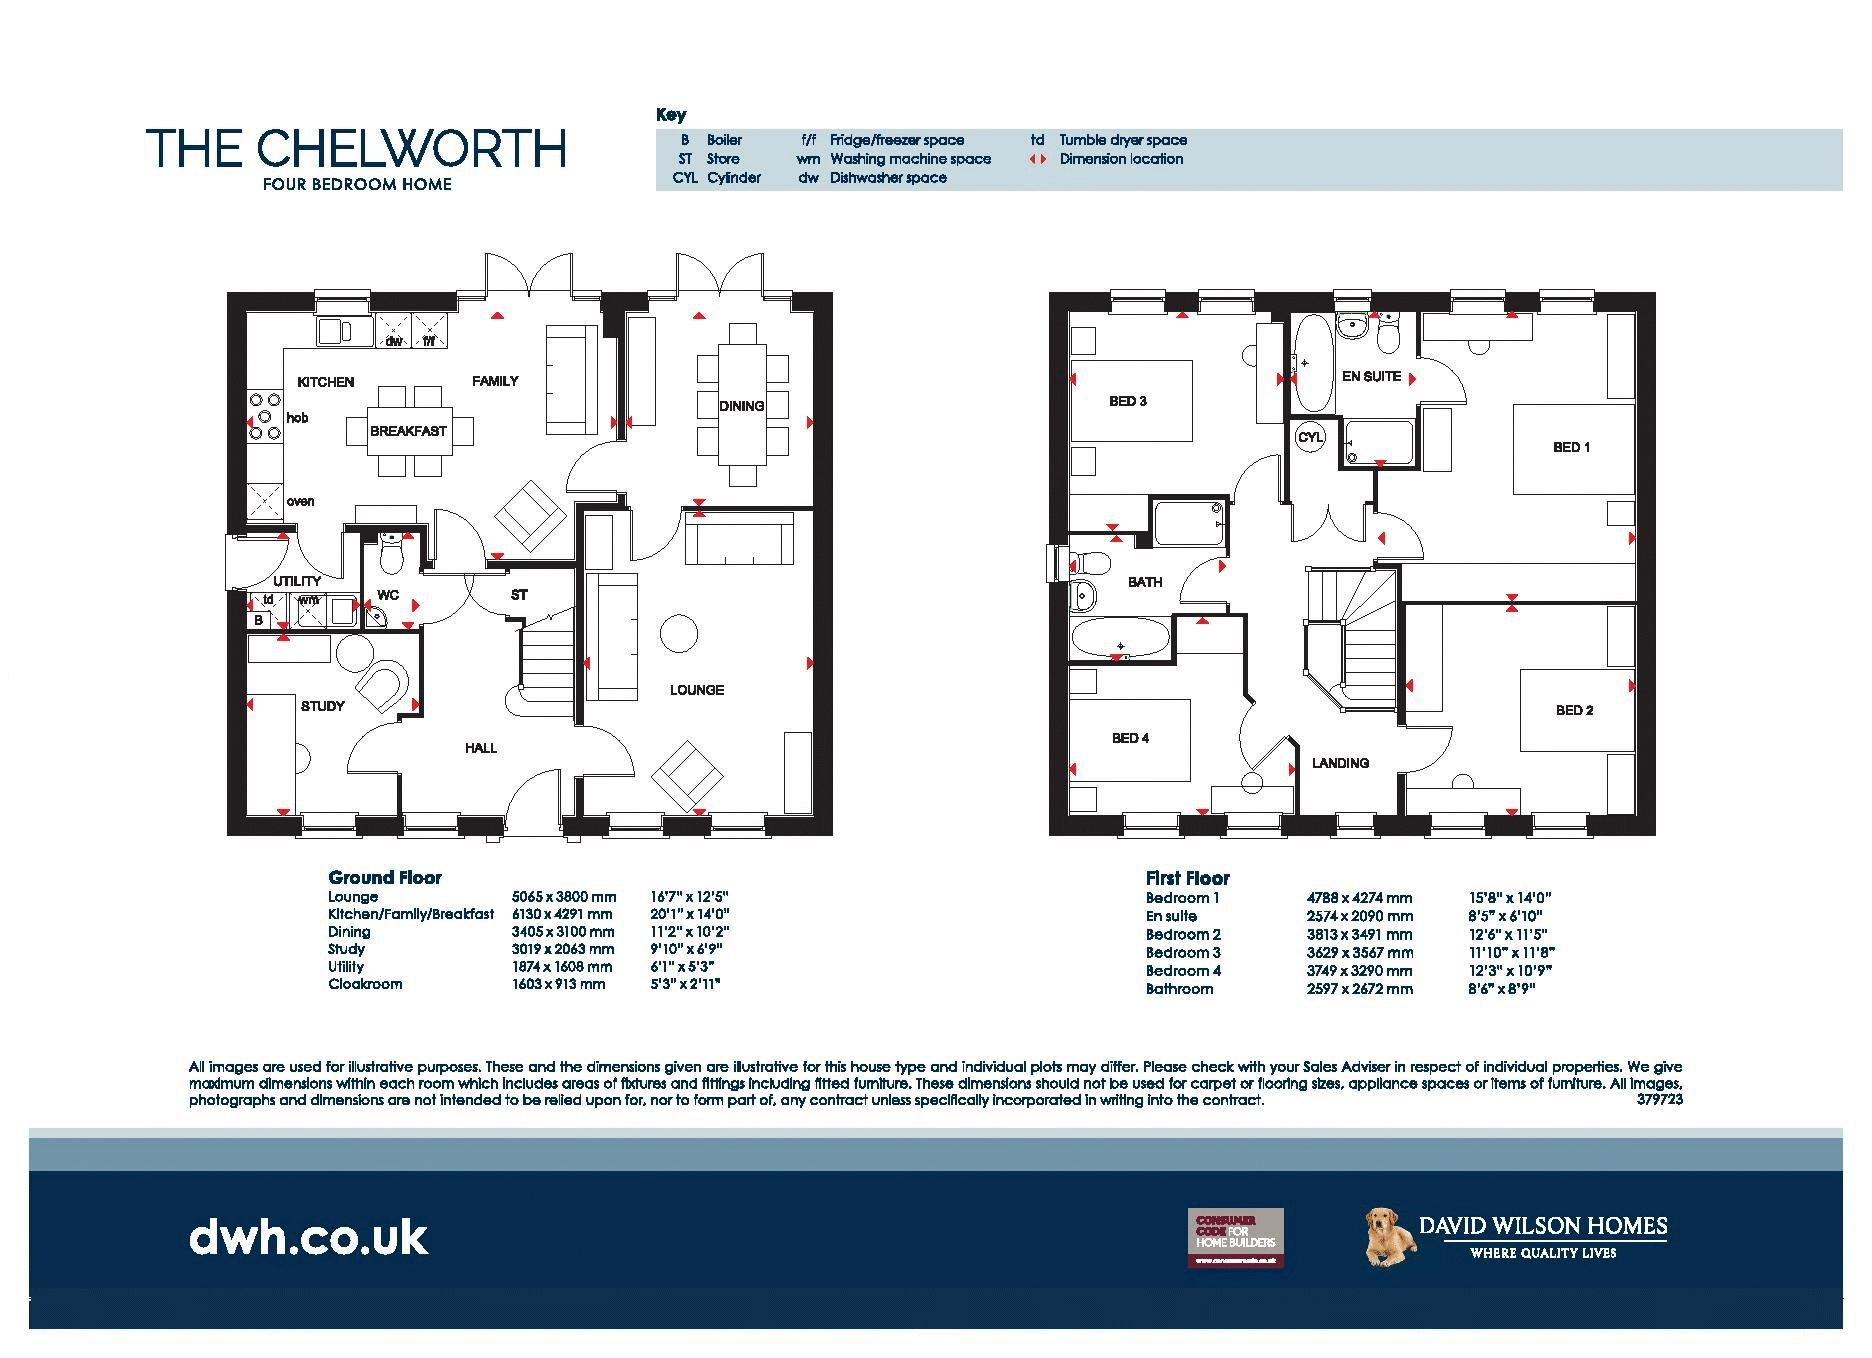 The Chelworth